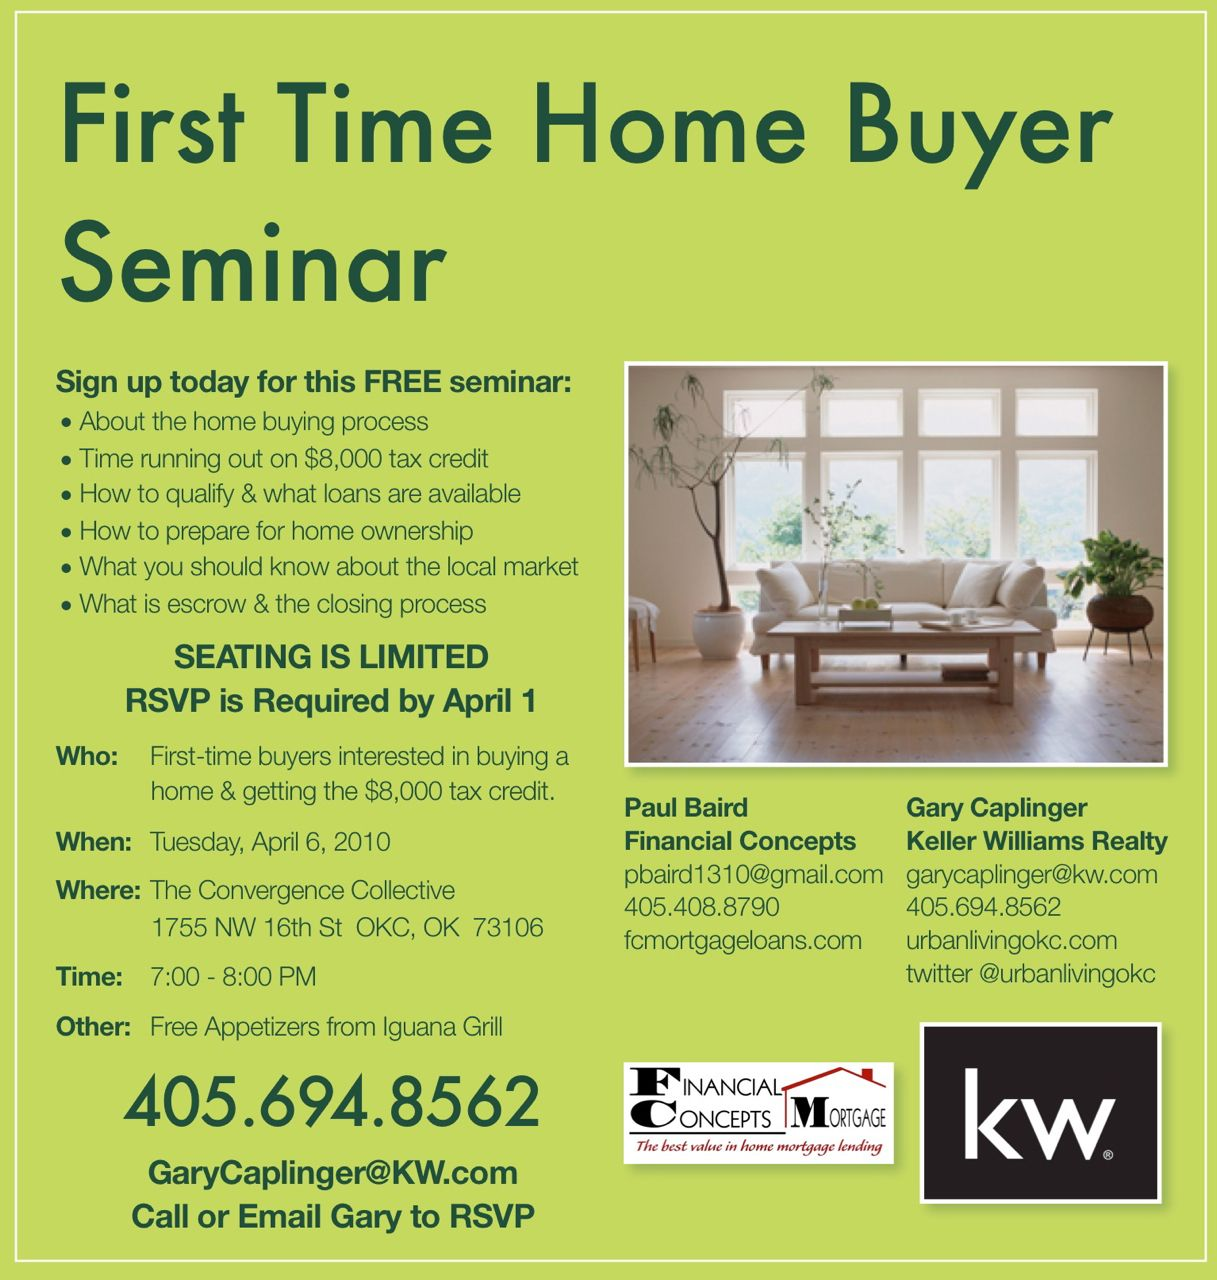 First Time Home Buyer Seminar Flyer  Yahoo Search Results Yahoo